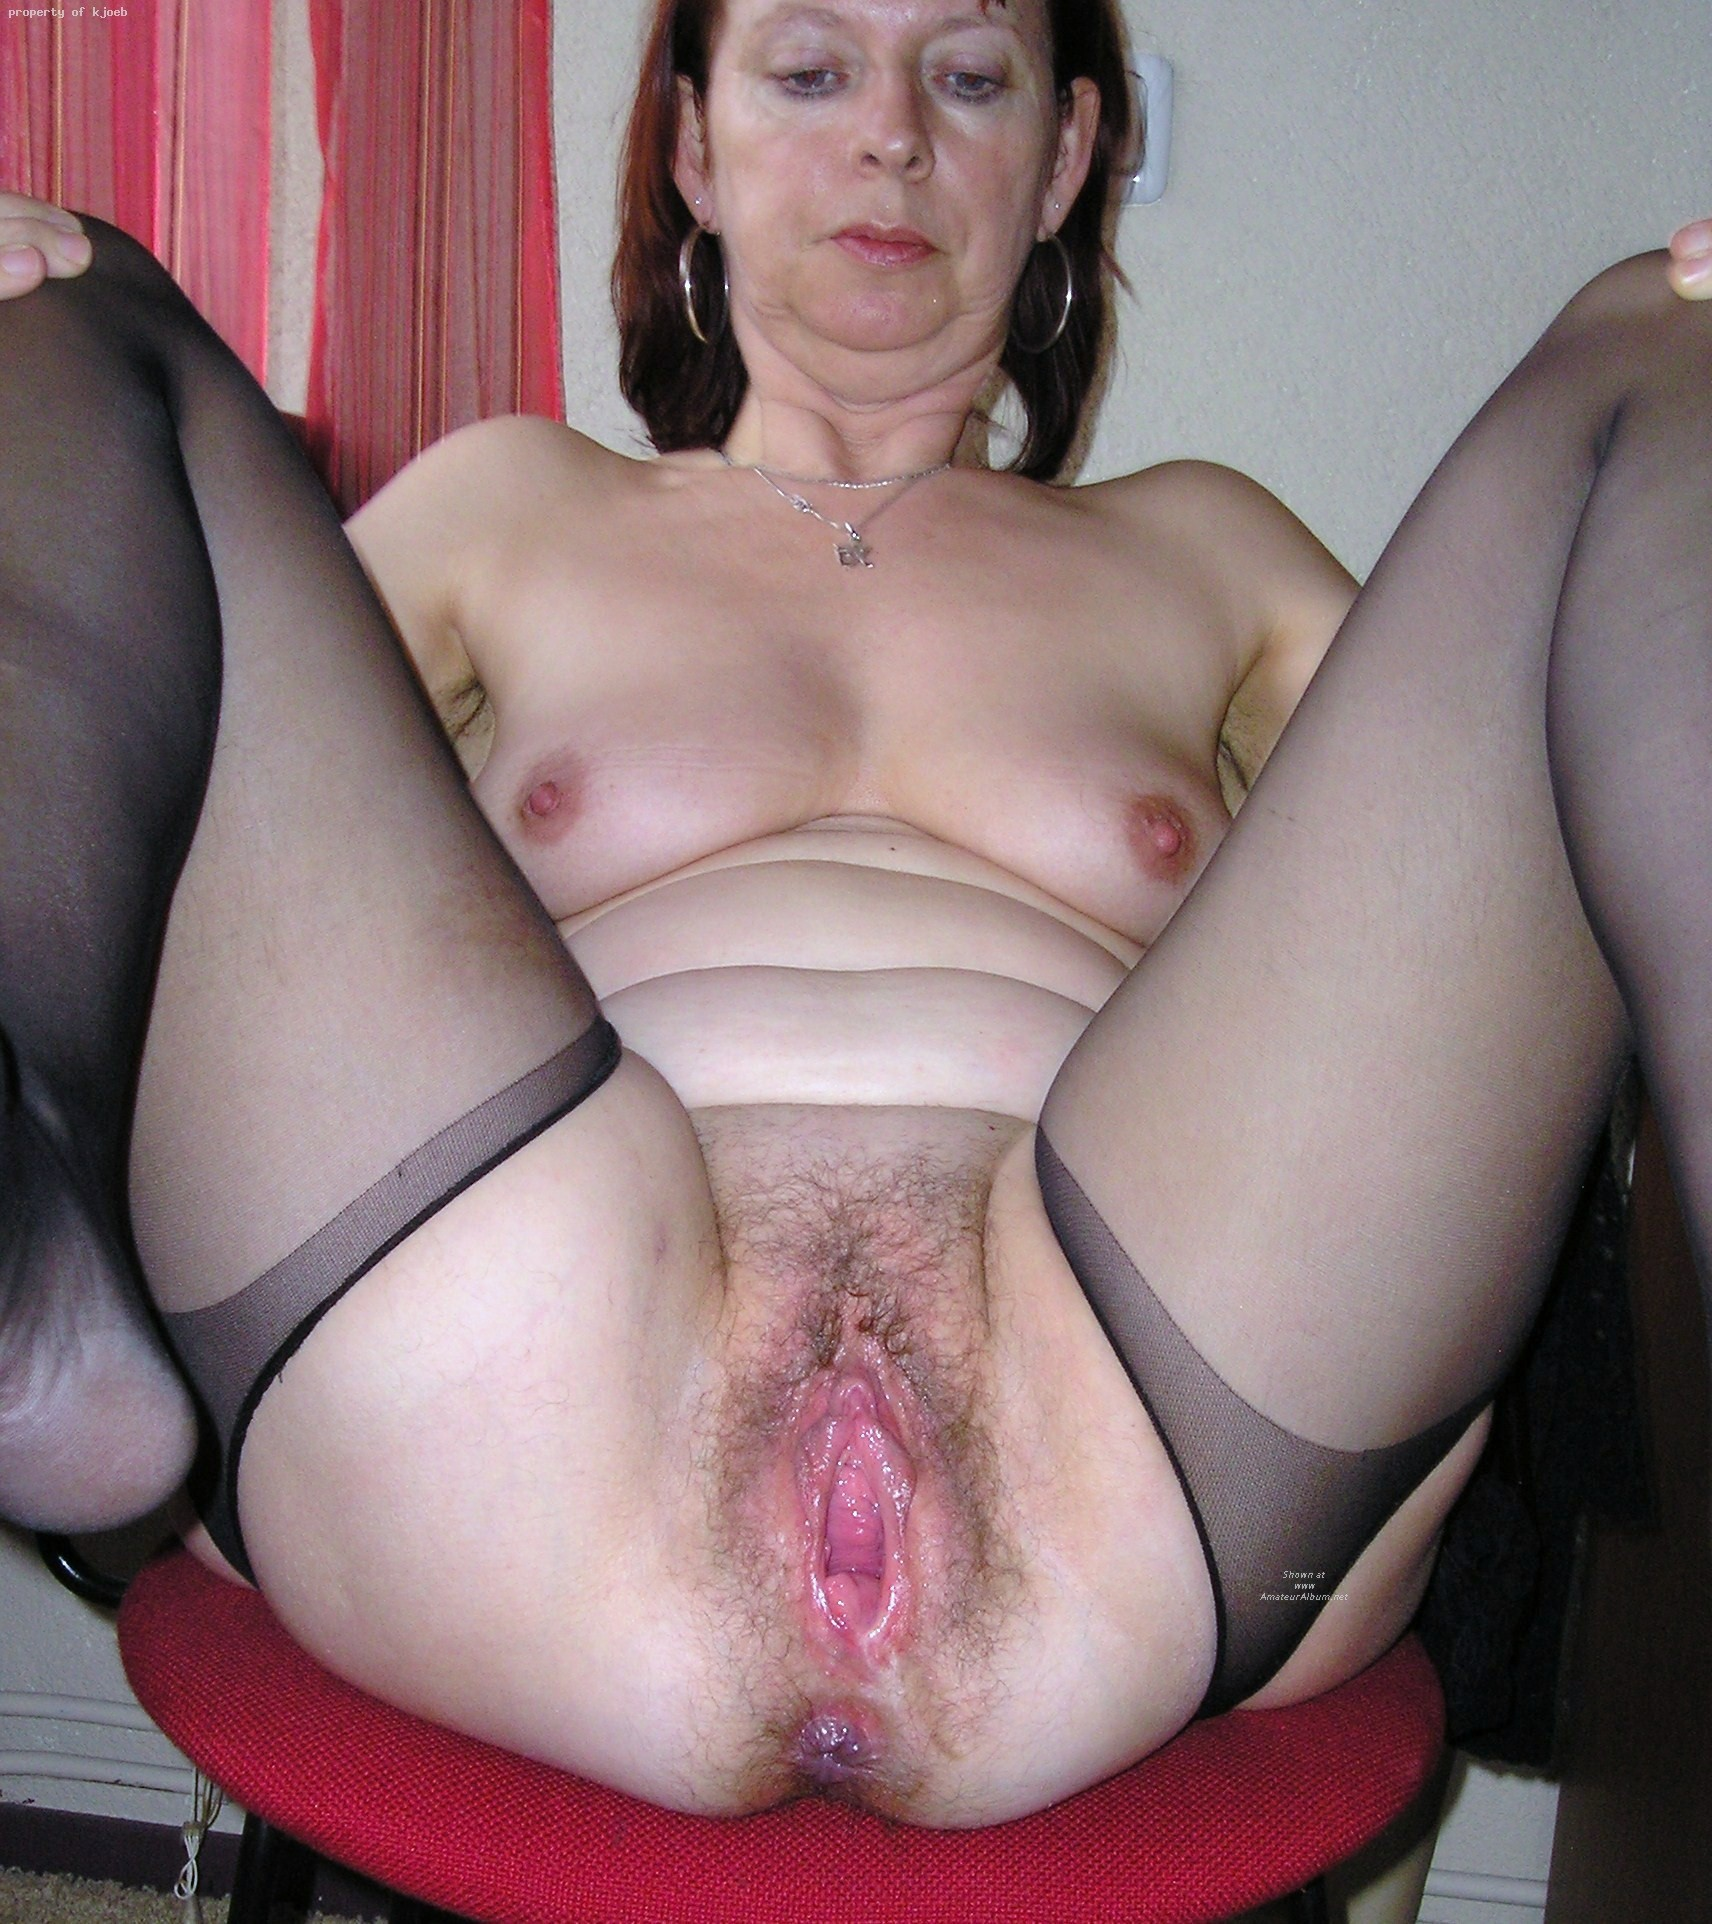 You tell Chubby mature picture pussy apologise